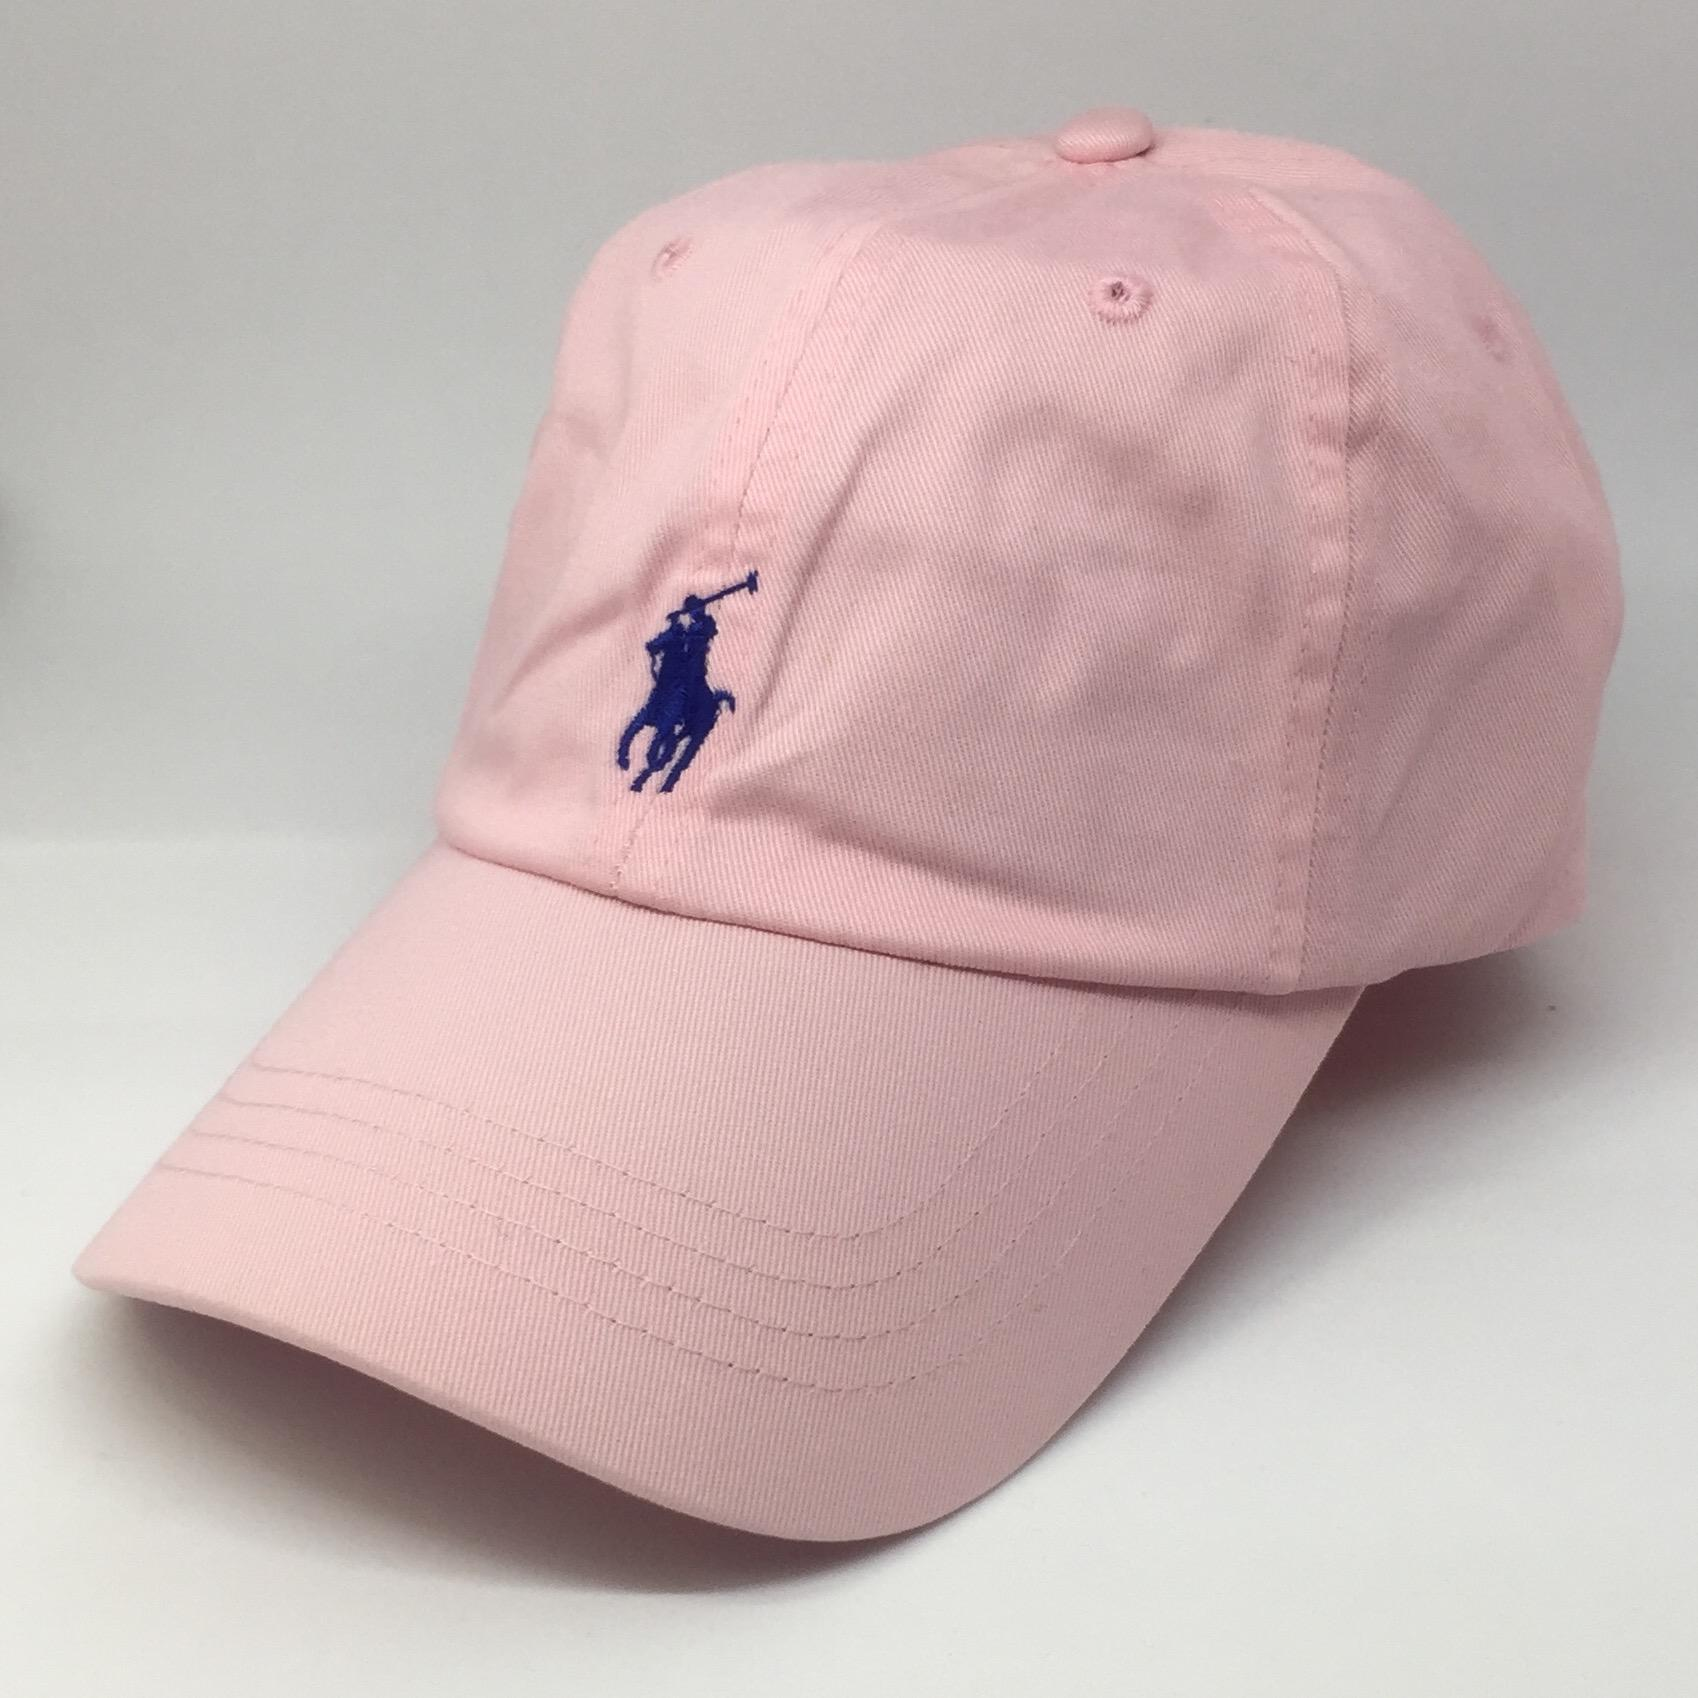 Buy Ralph Lauren Baseball Cap Pink Polo Ralph Lauren